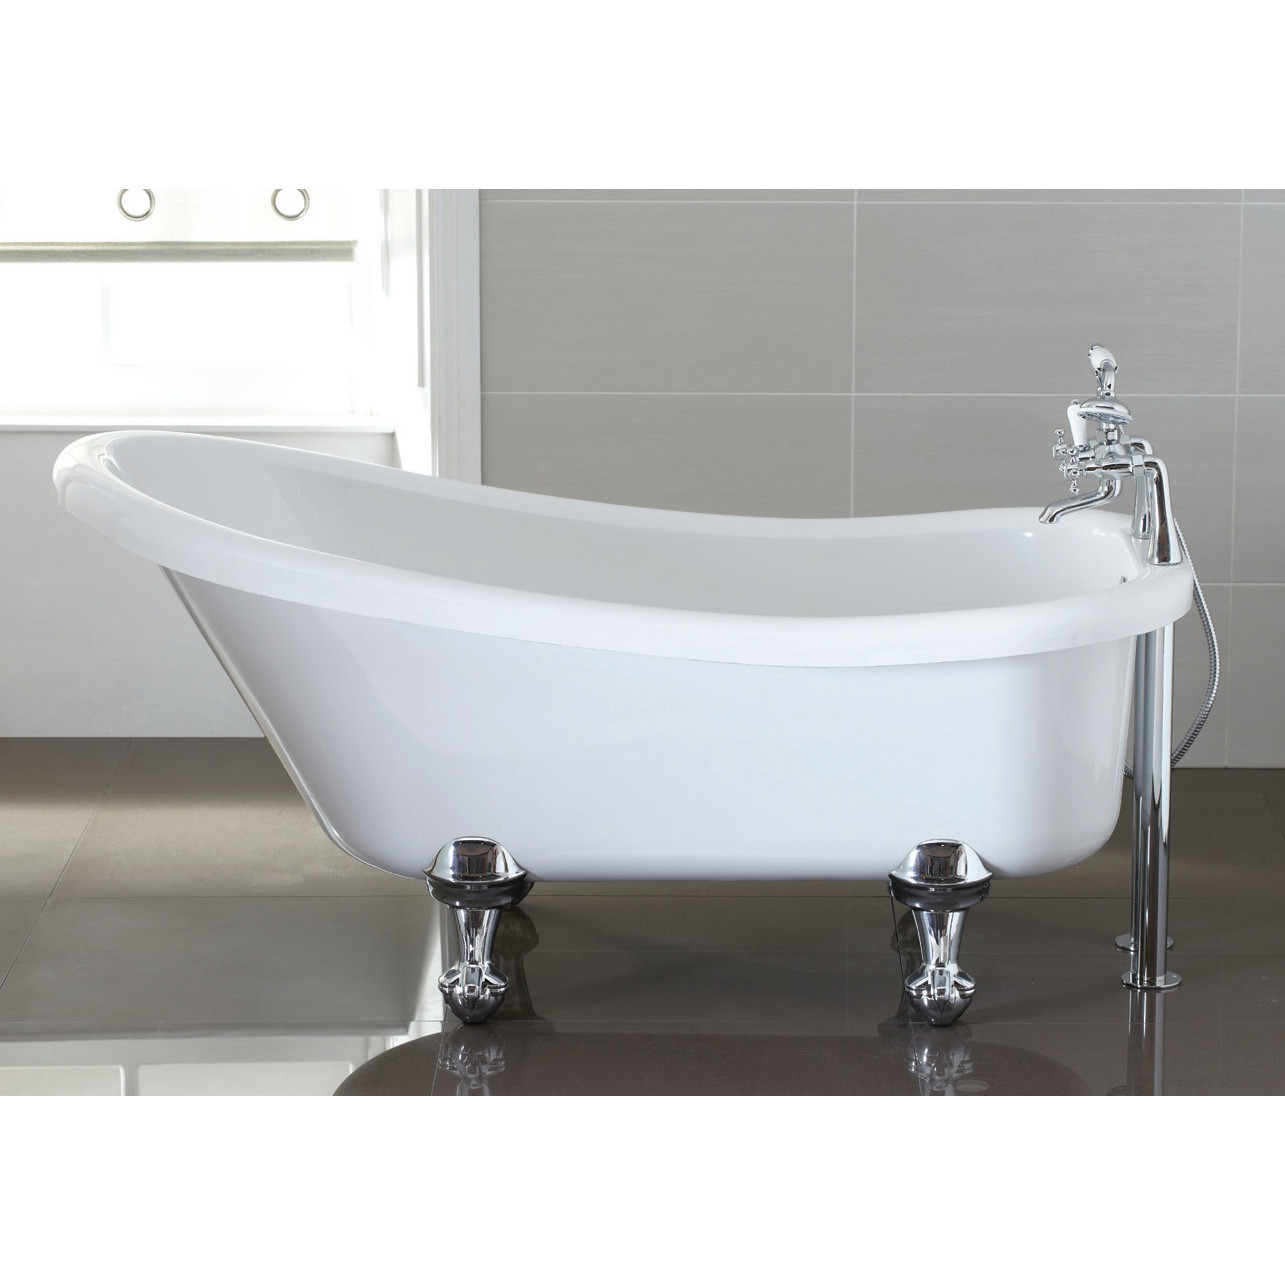 Eldwick Single Ended Slipper Roll Top Bath with Traditional Feet